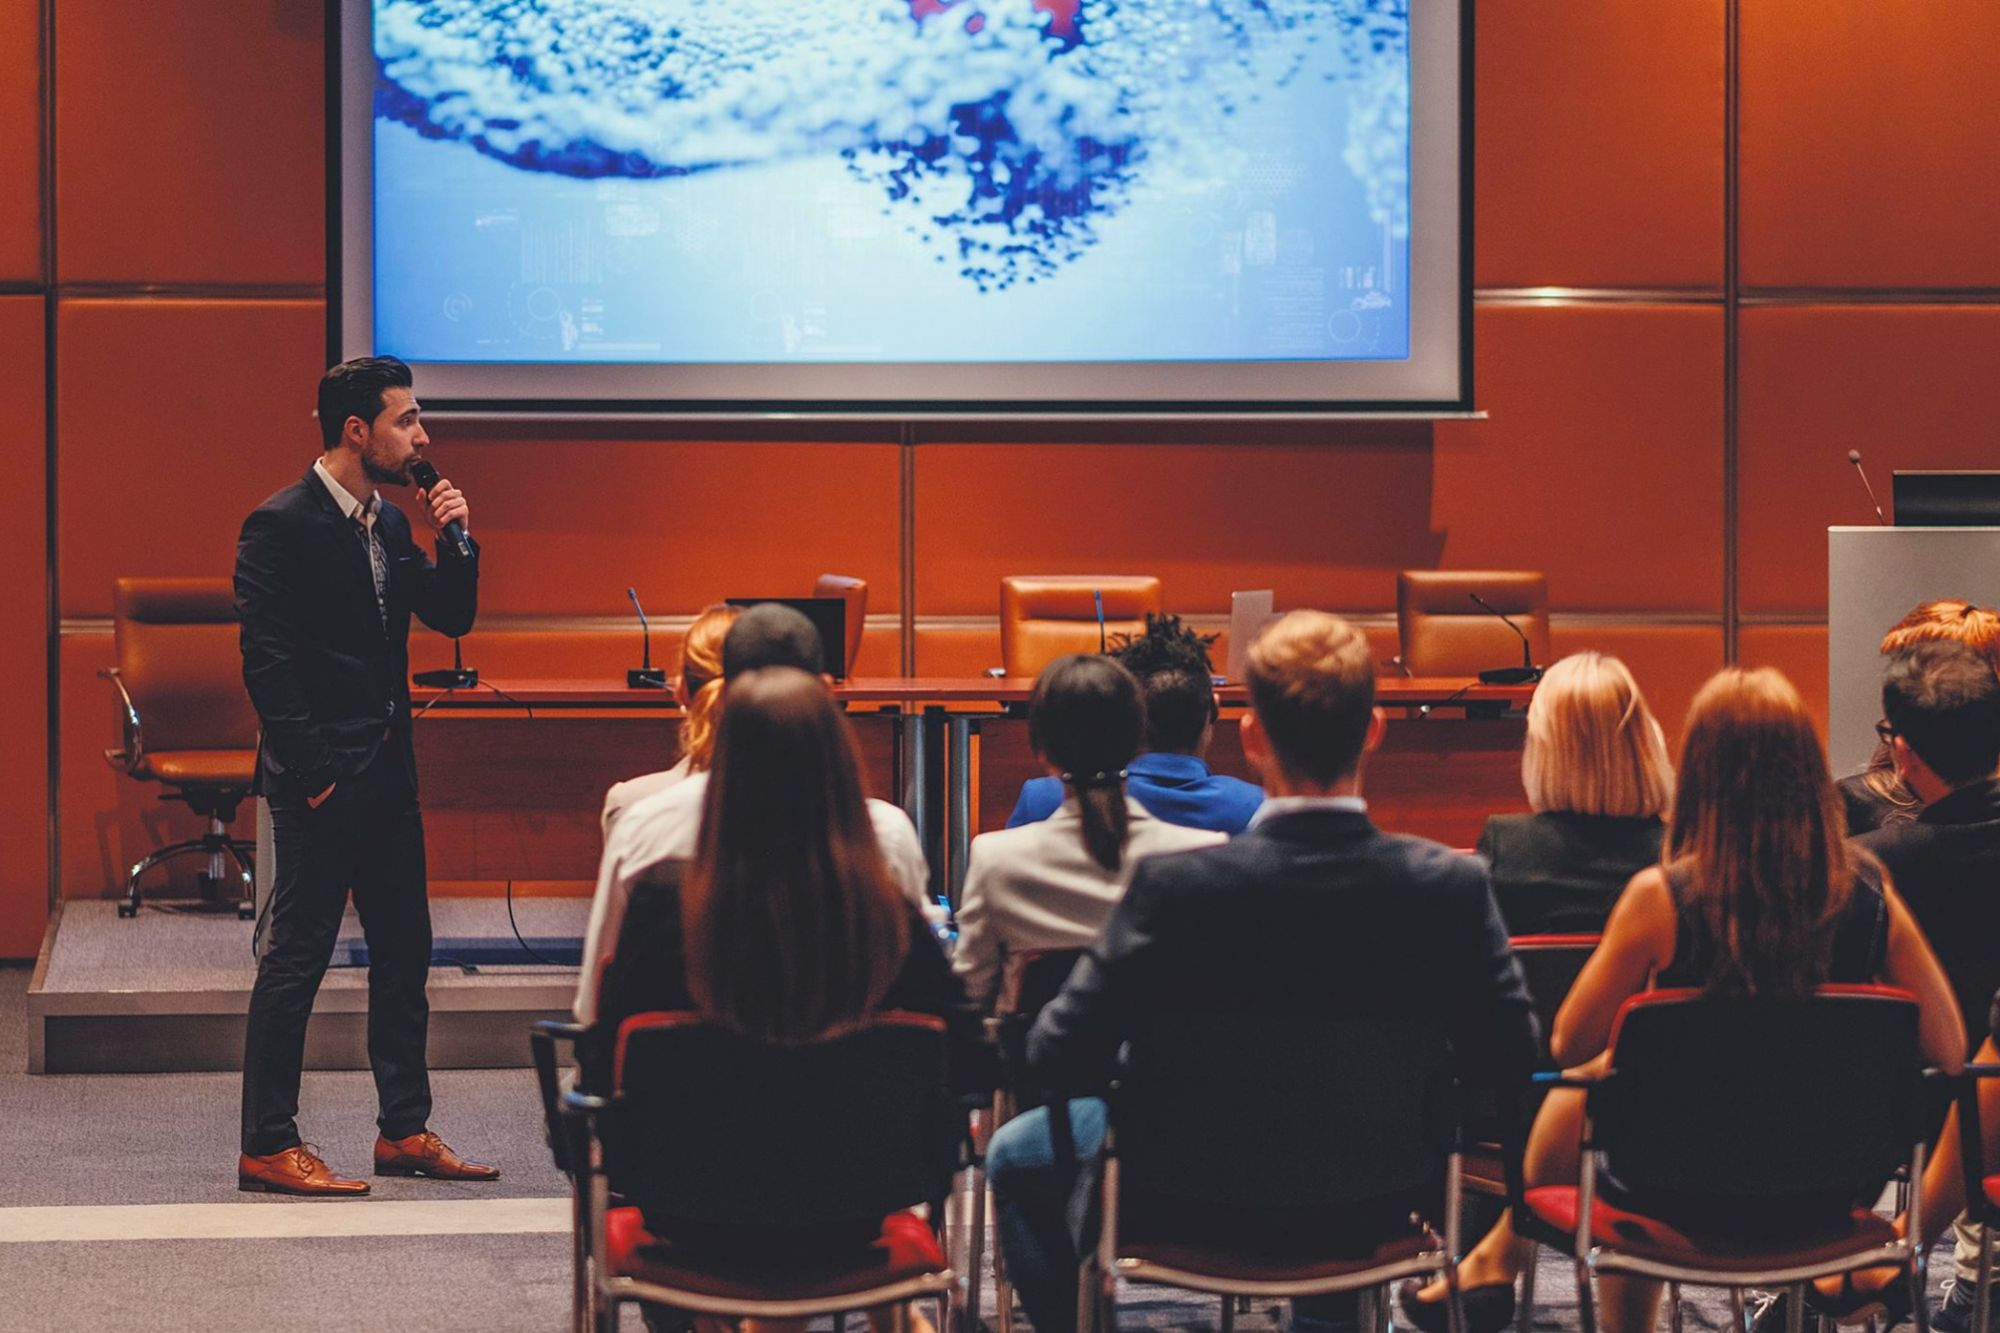 6 Myths About Presenting and How Overcoming Them Can Increase Your Impact